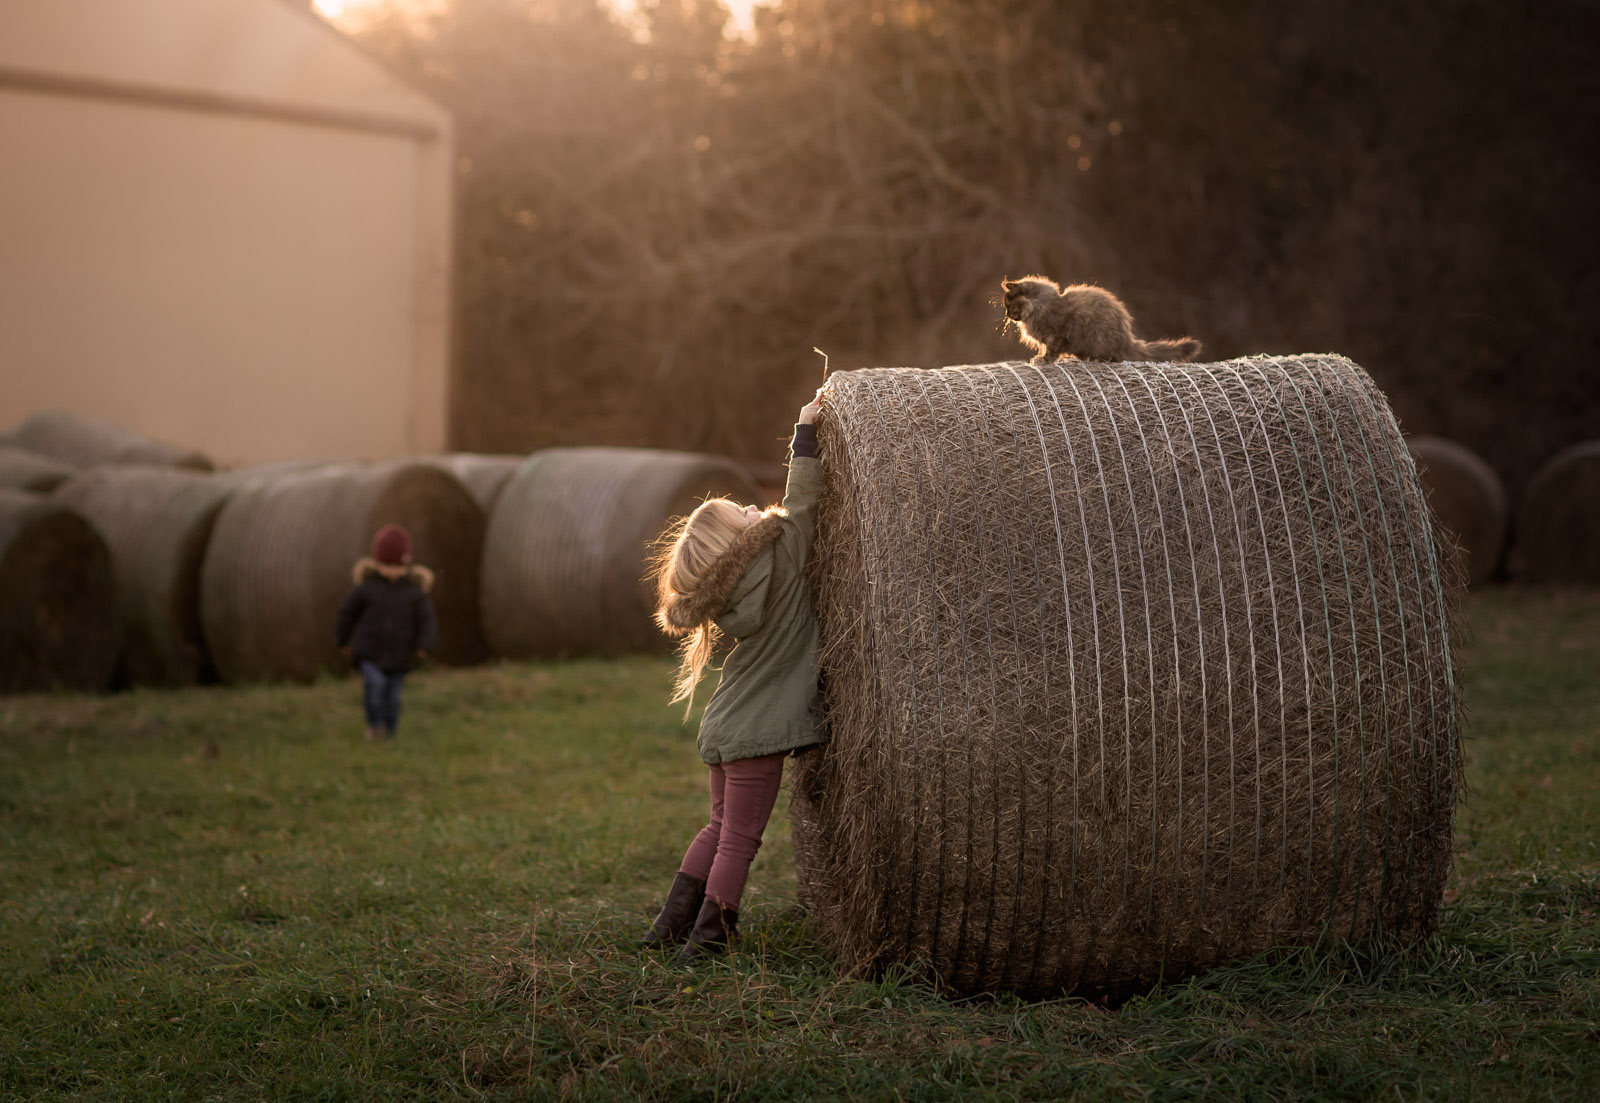 photo of girl reaching for a cat on a bail of hay by Danielle Awwad